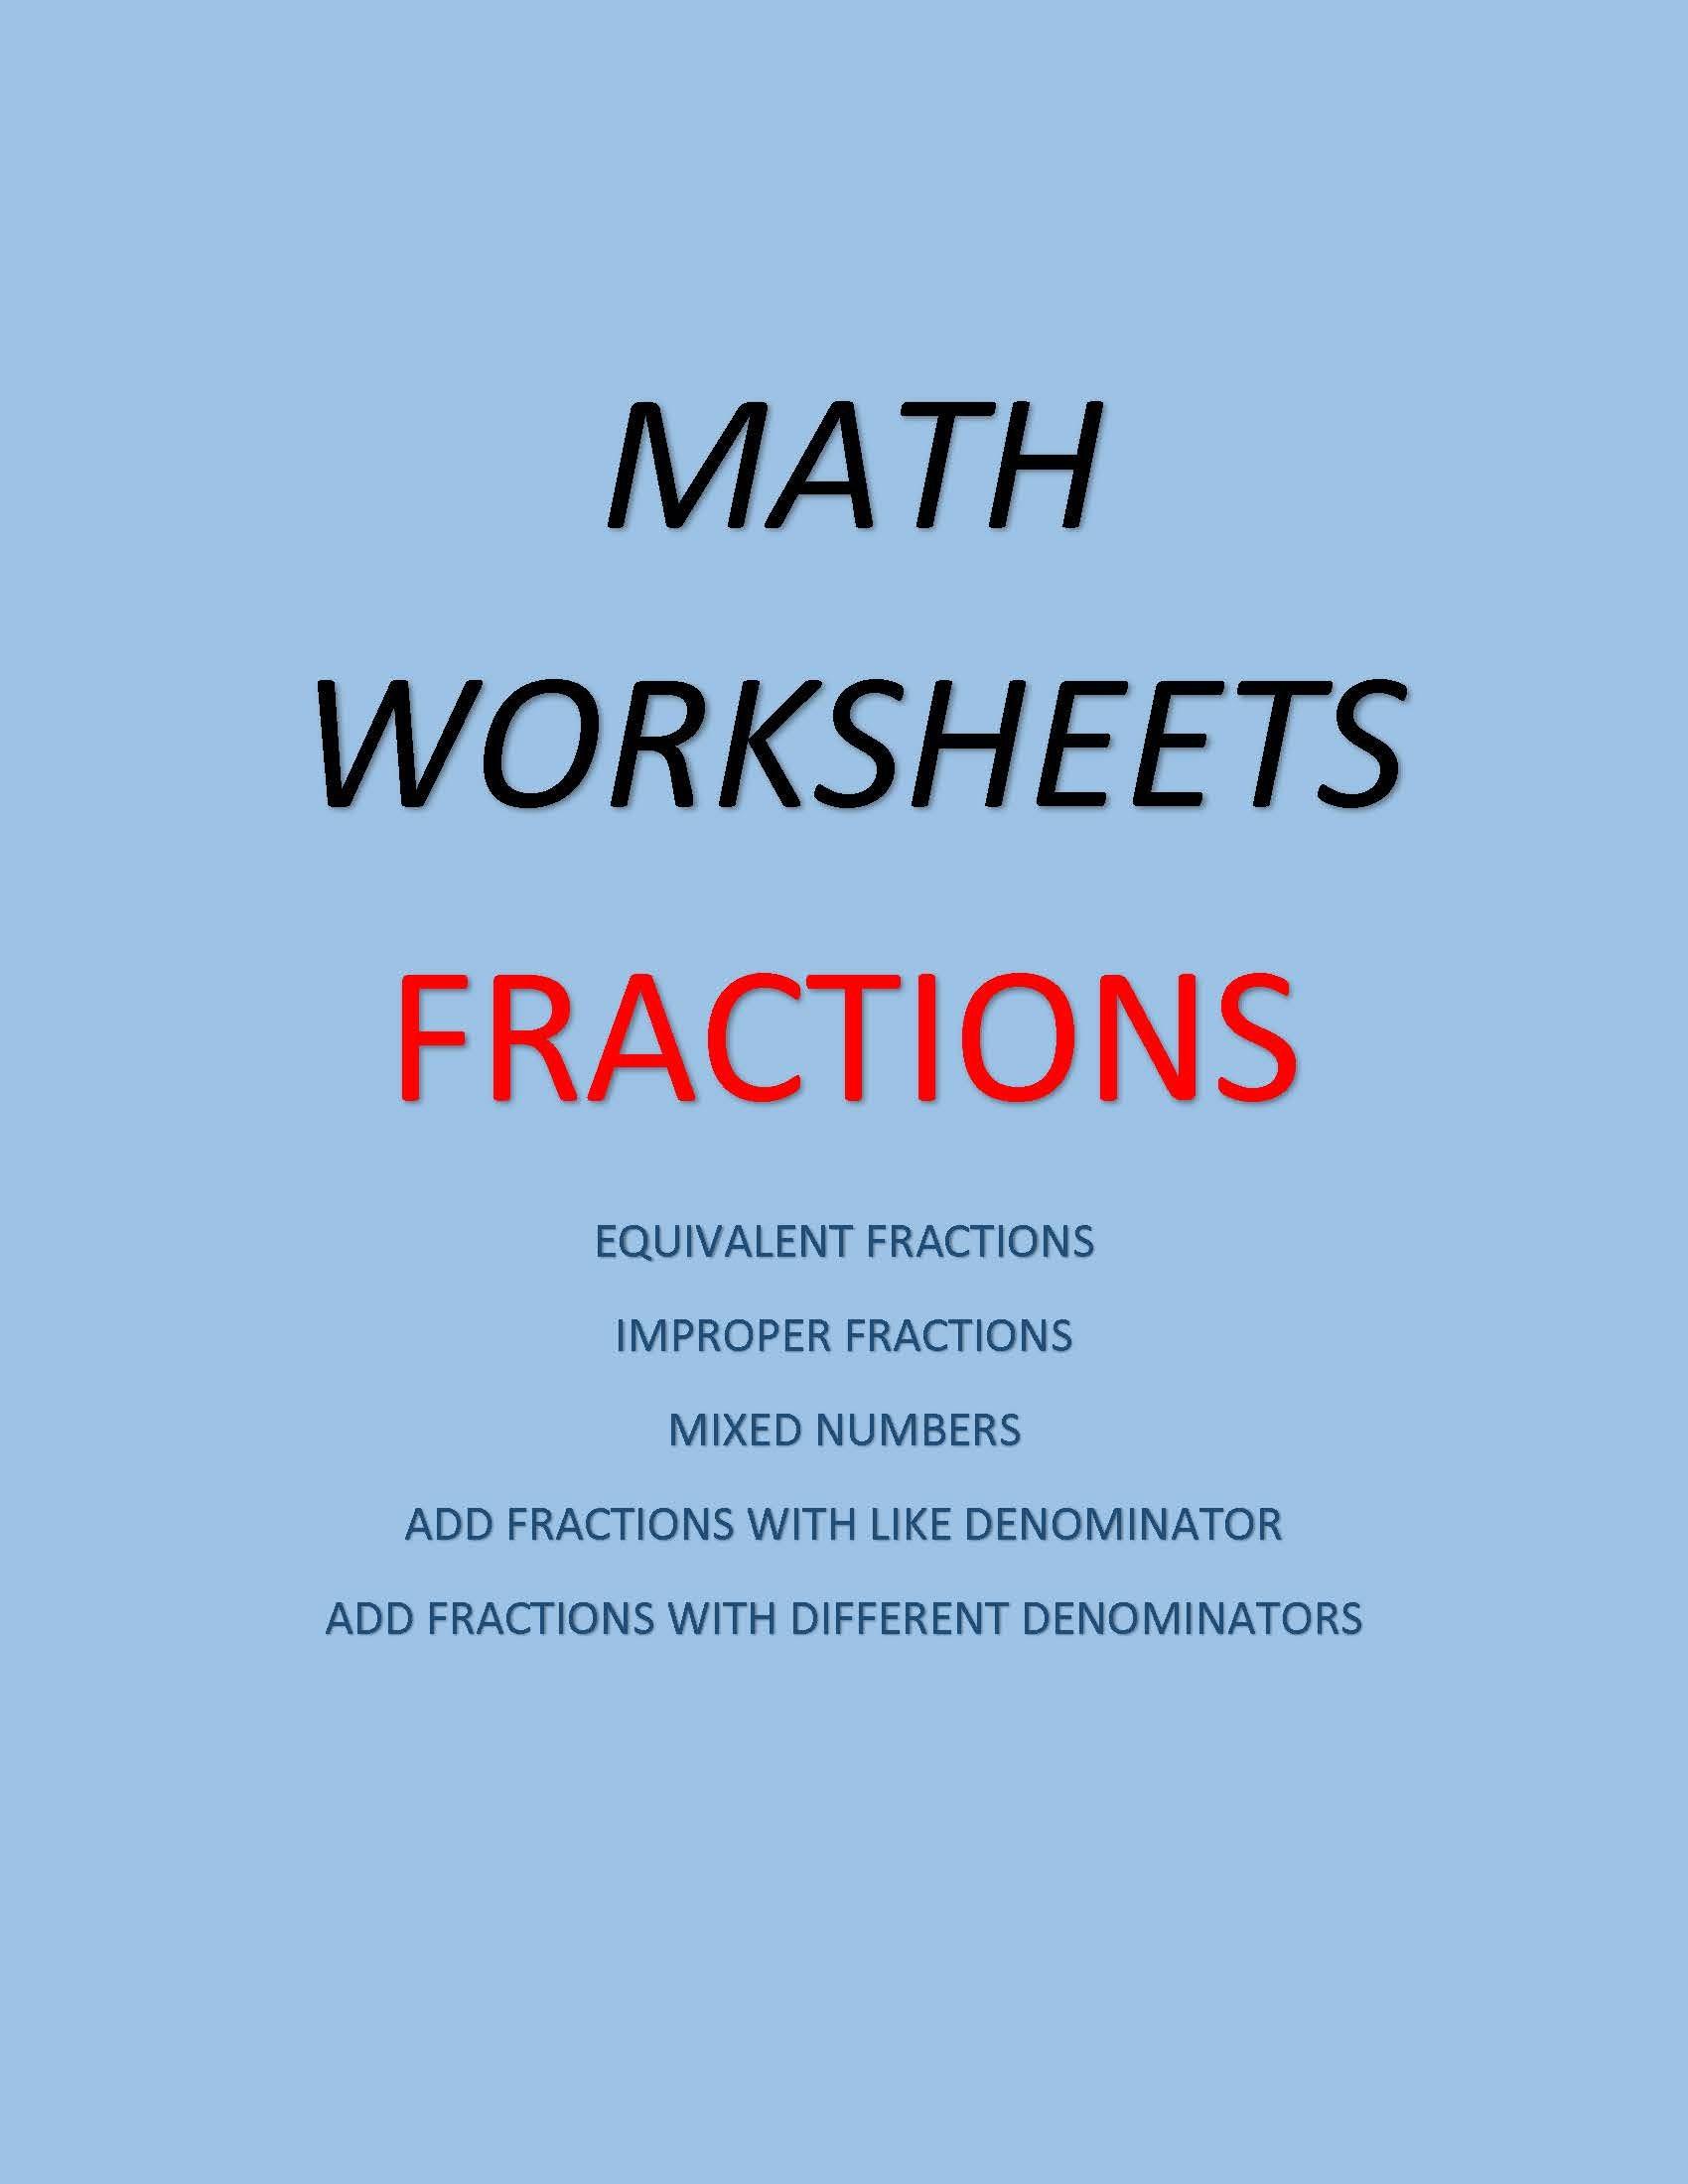 Math Worksheets Fractions 36 Worksheets Equivalent